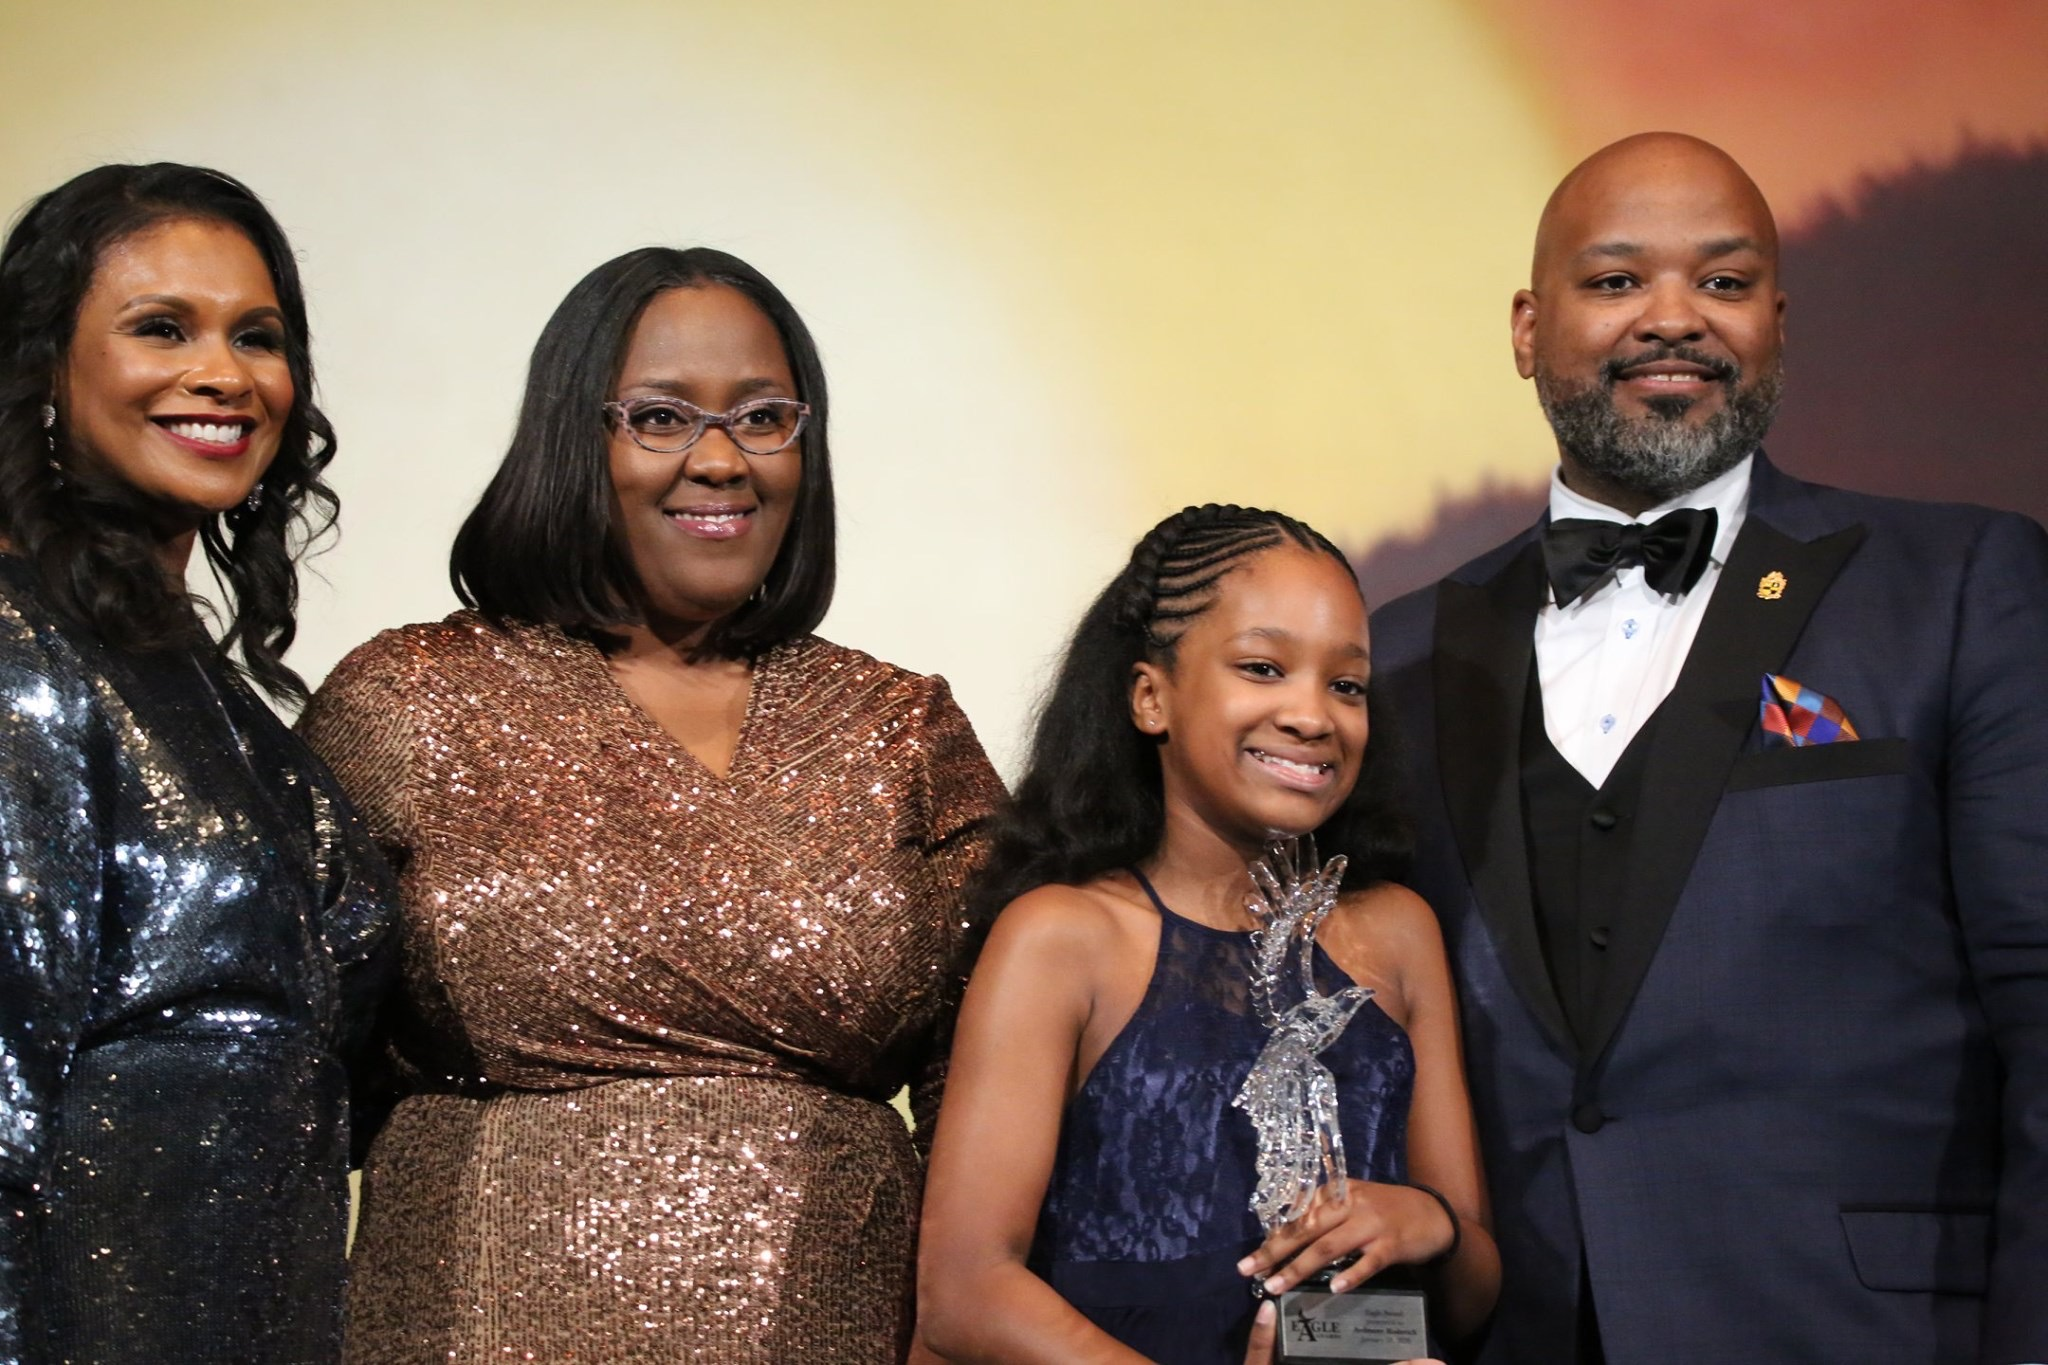 The African American Chamber of Commerce of Central Florida gives a warm welcome to new Trustee and winner of last year's Eagle Award, Ardmore Roderick!